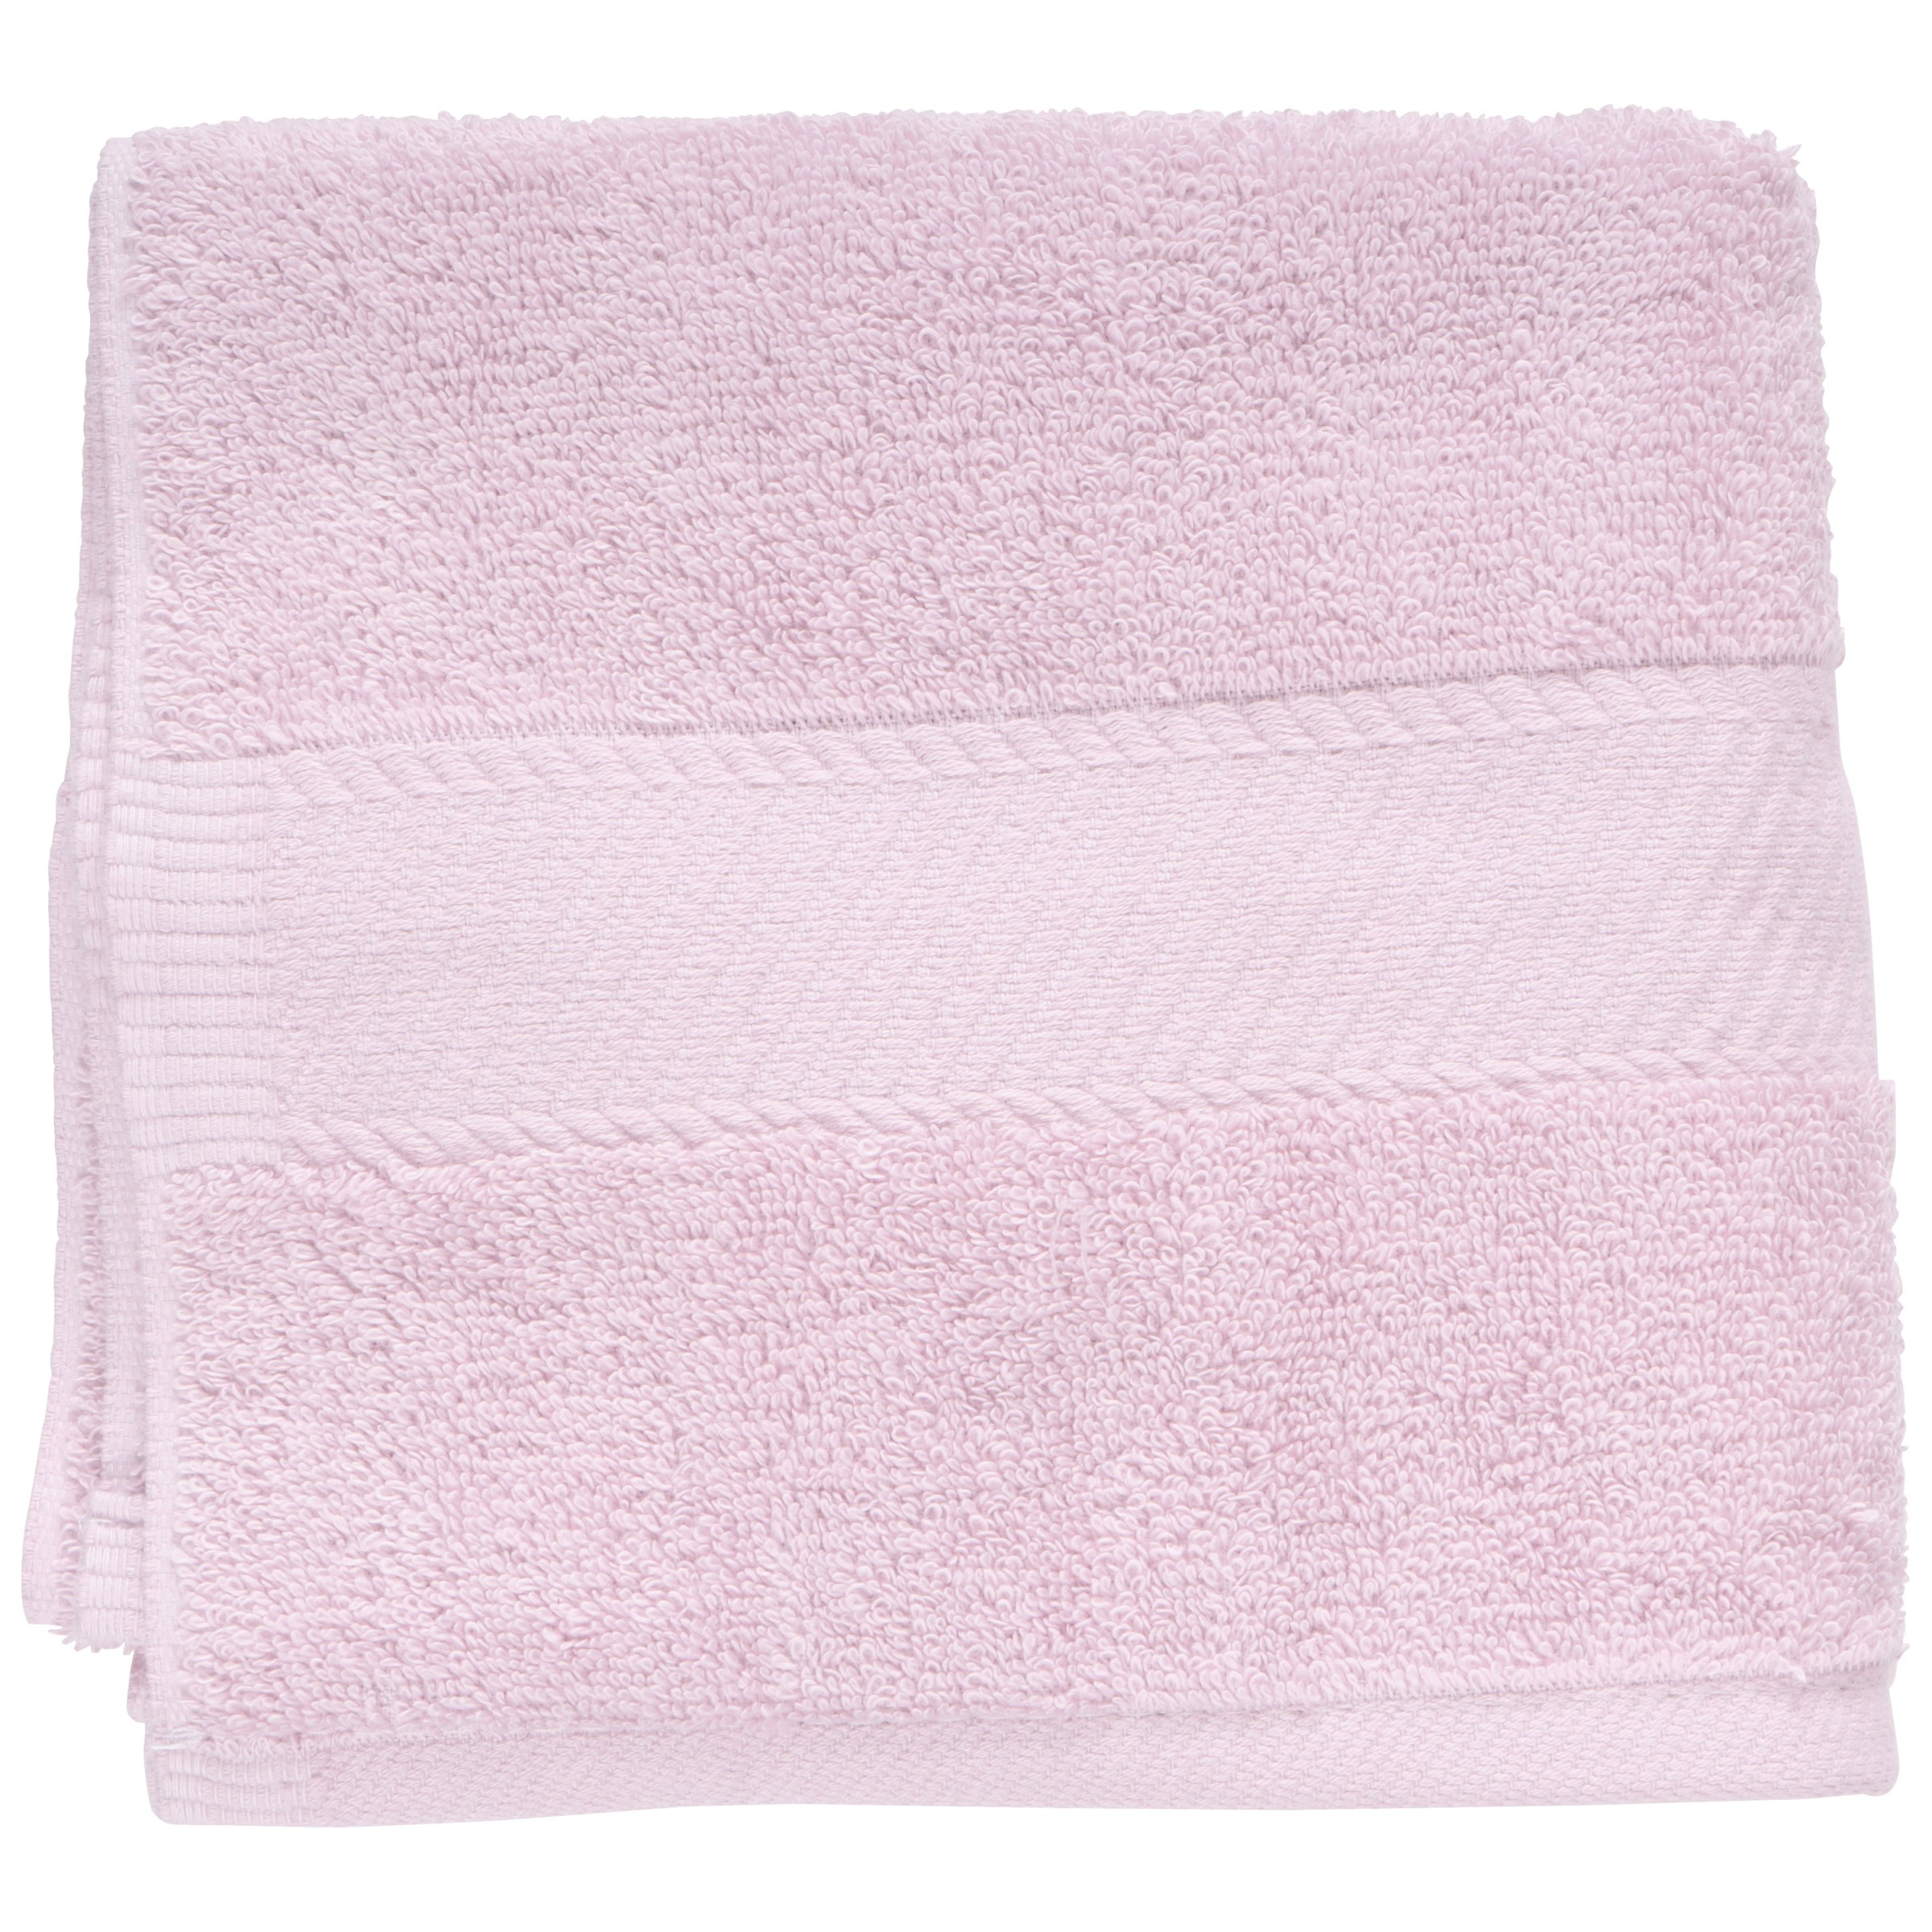 Made Here Towel Collection, Set of 2